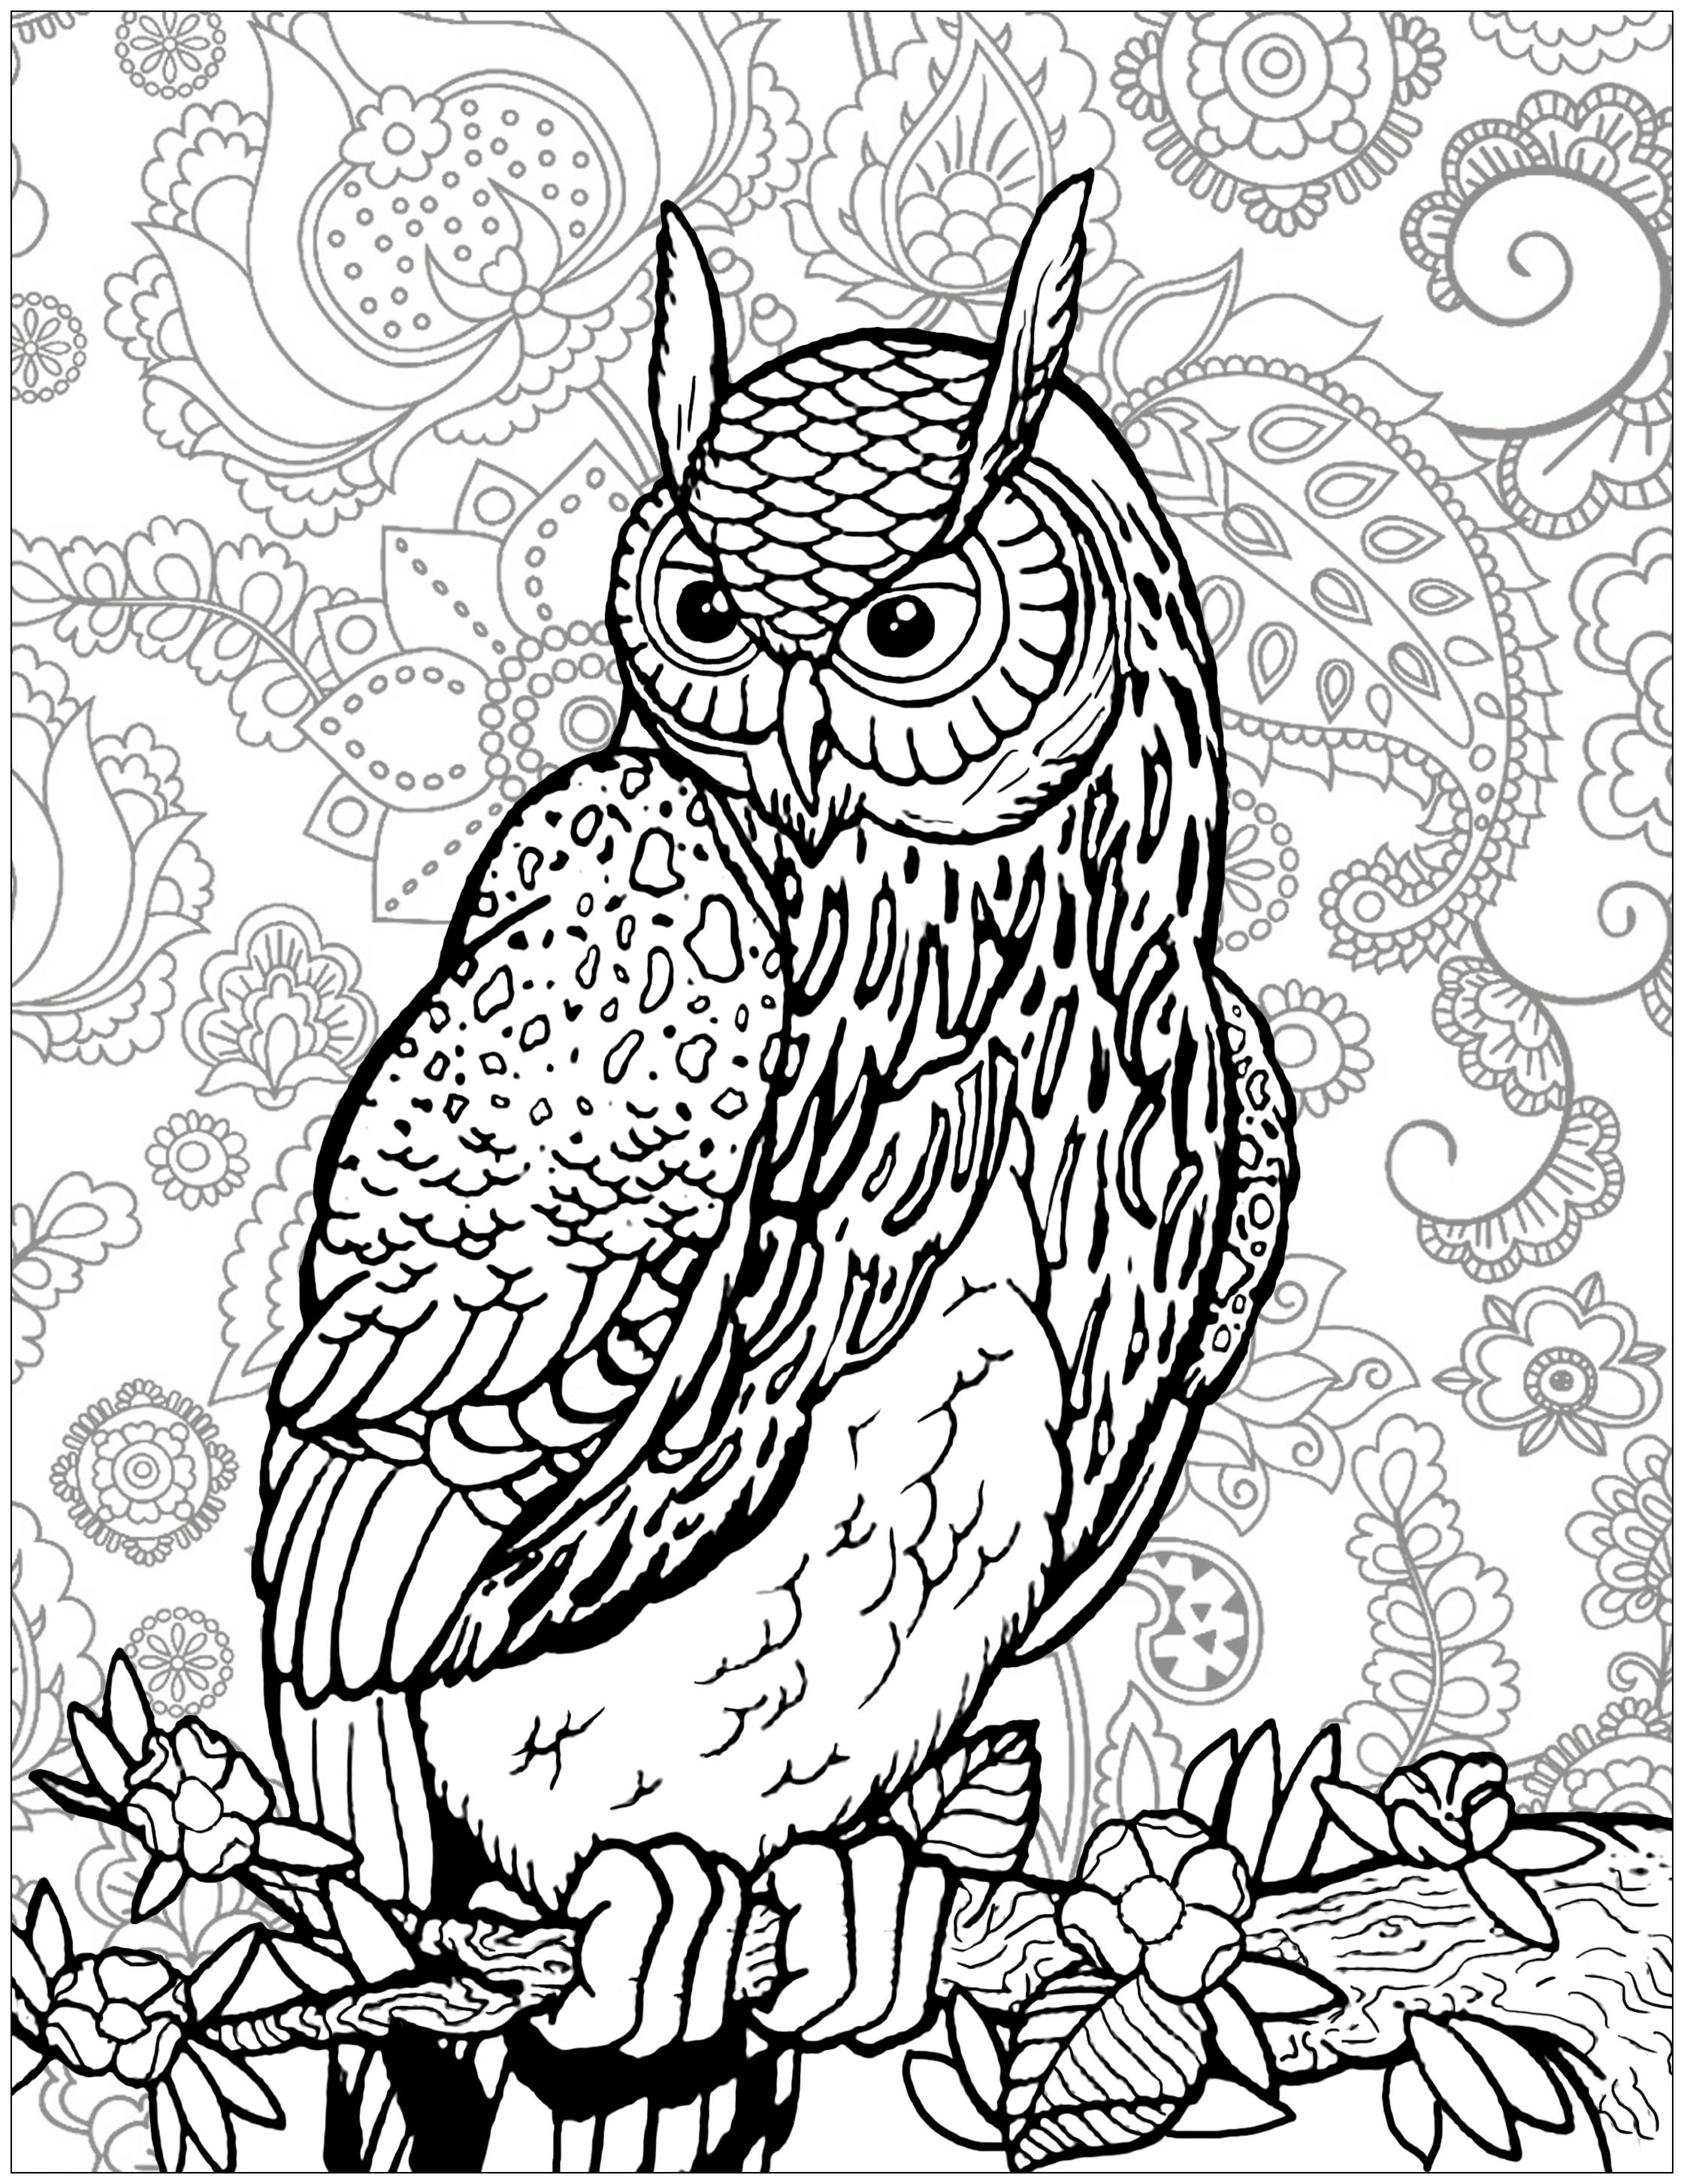 complex animal coloring pages - owl on tree branch background owls adult coloring pages